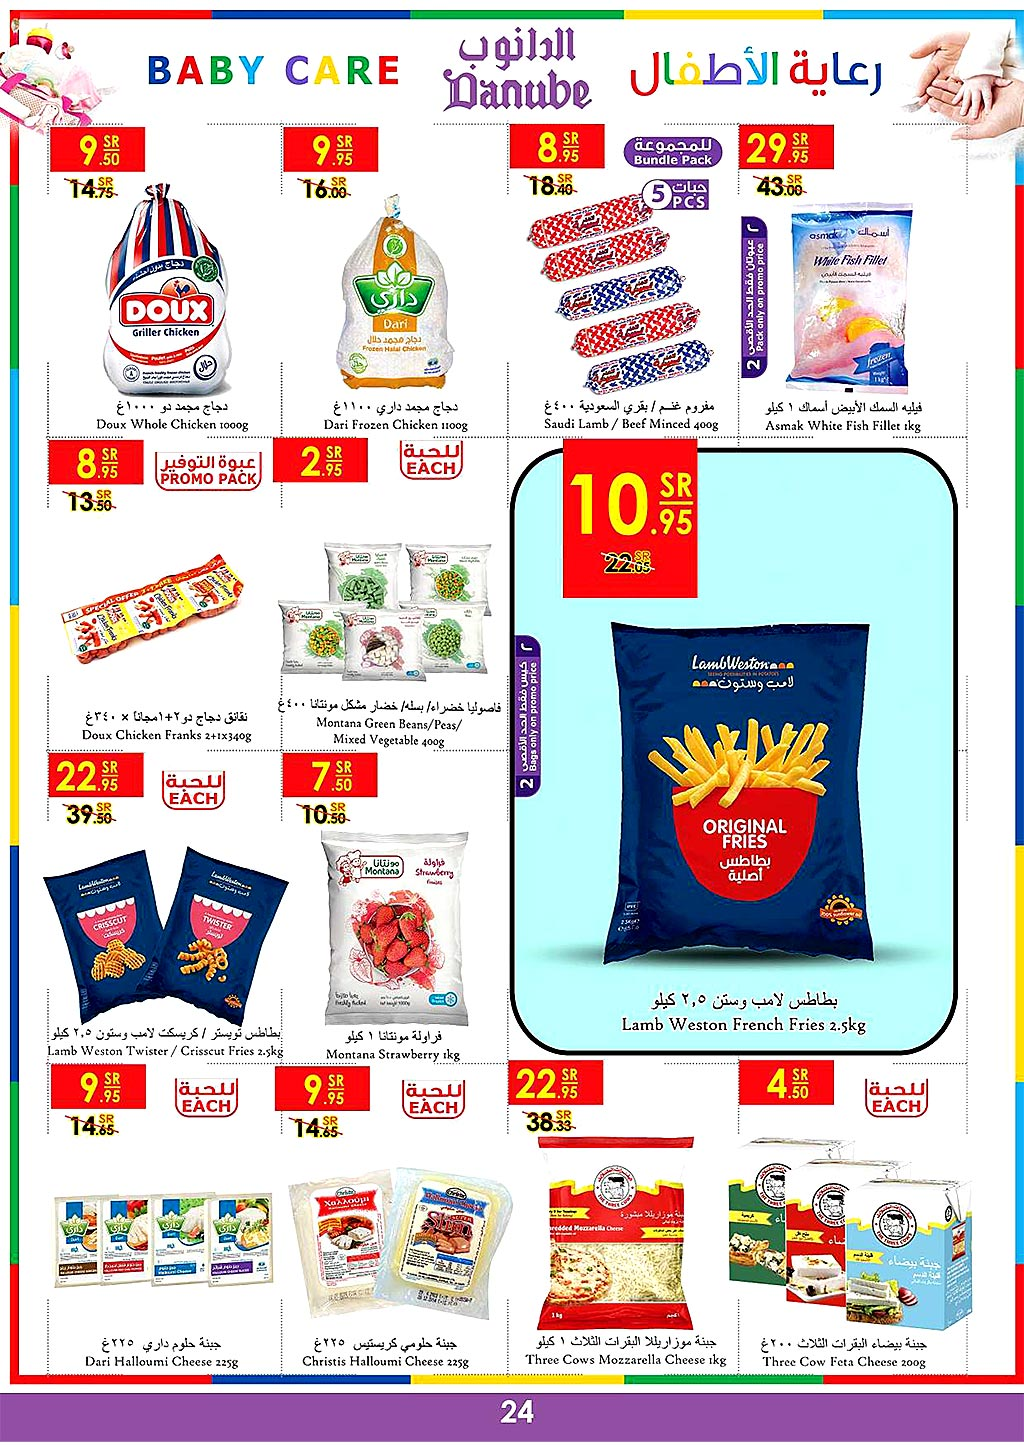 danube offers from 24july to 30july 2019 page number 23 عروض الدانوب من 24 يوليو حتى 30 يوليو 2019 صفحة رقم 23